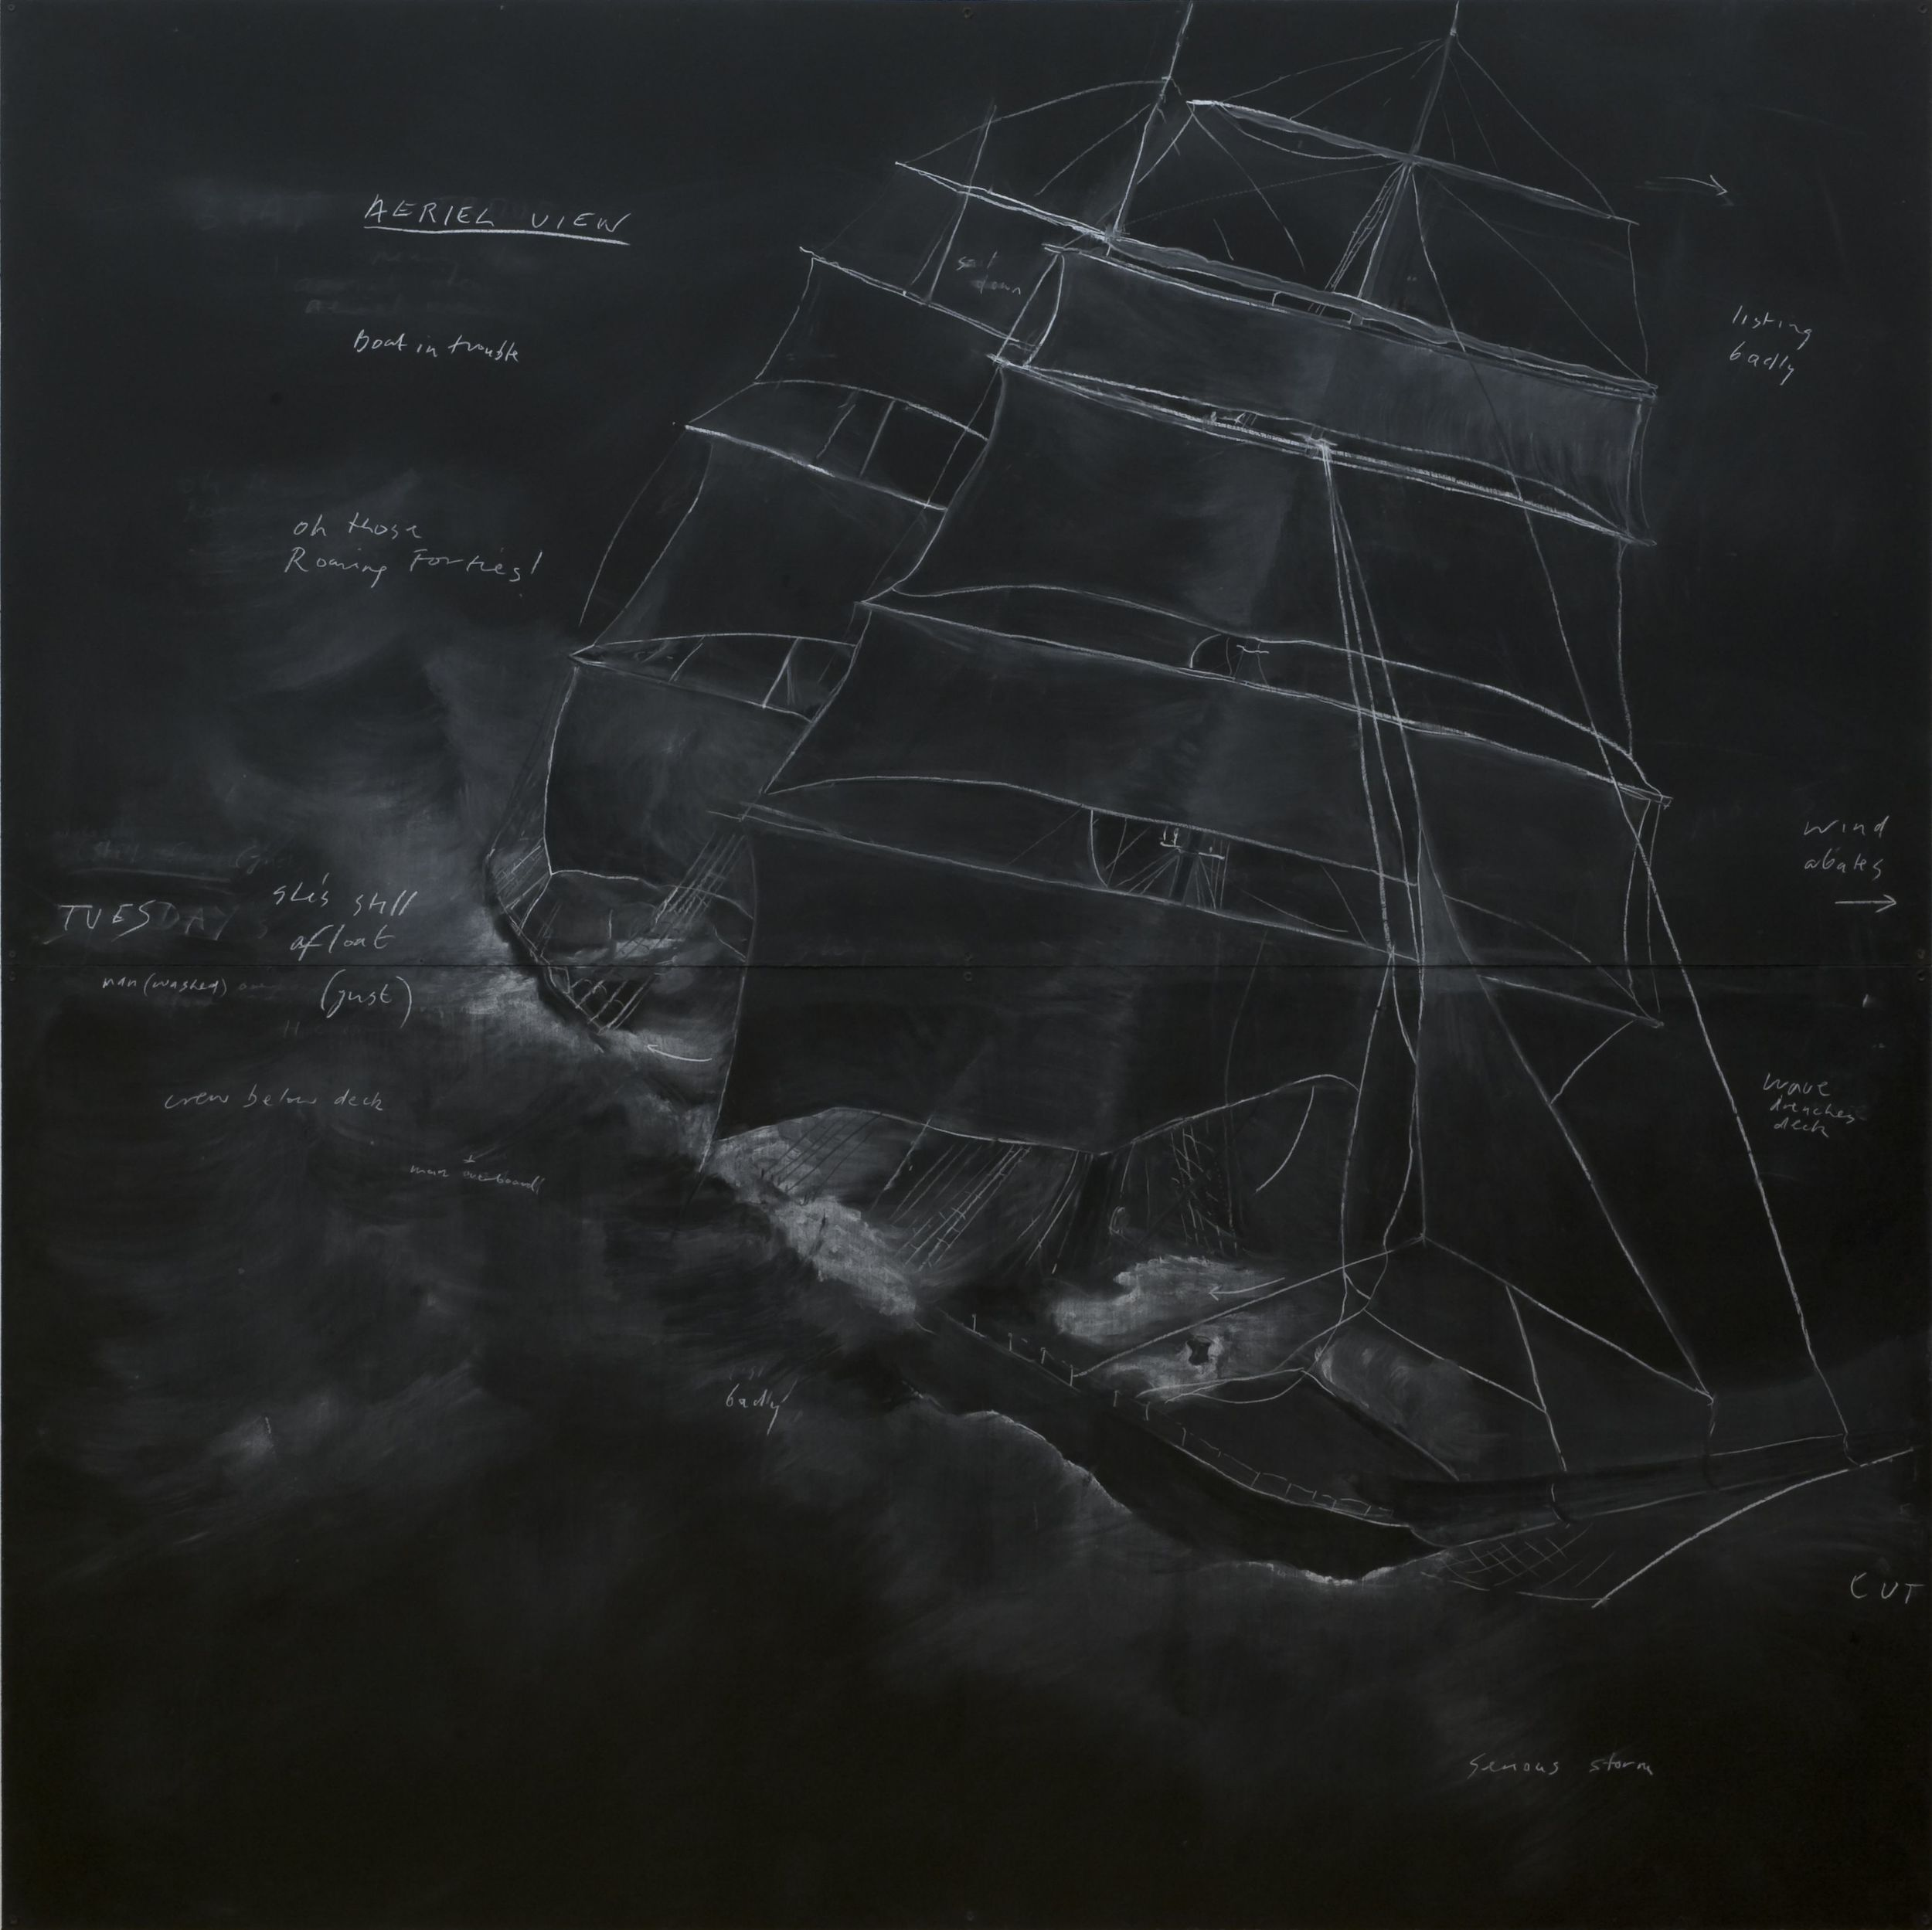 Tacita Dean.  Roaring Forties: Seven Boards in Seven Days,  1997. Chalk on blackboard. Tate Collection.